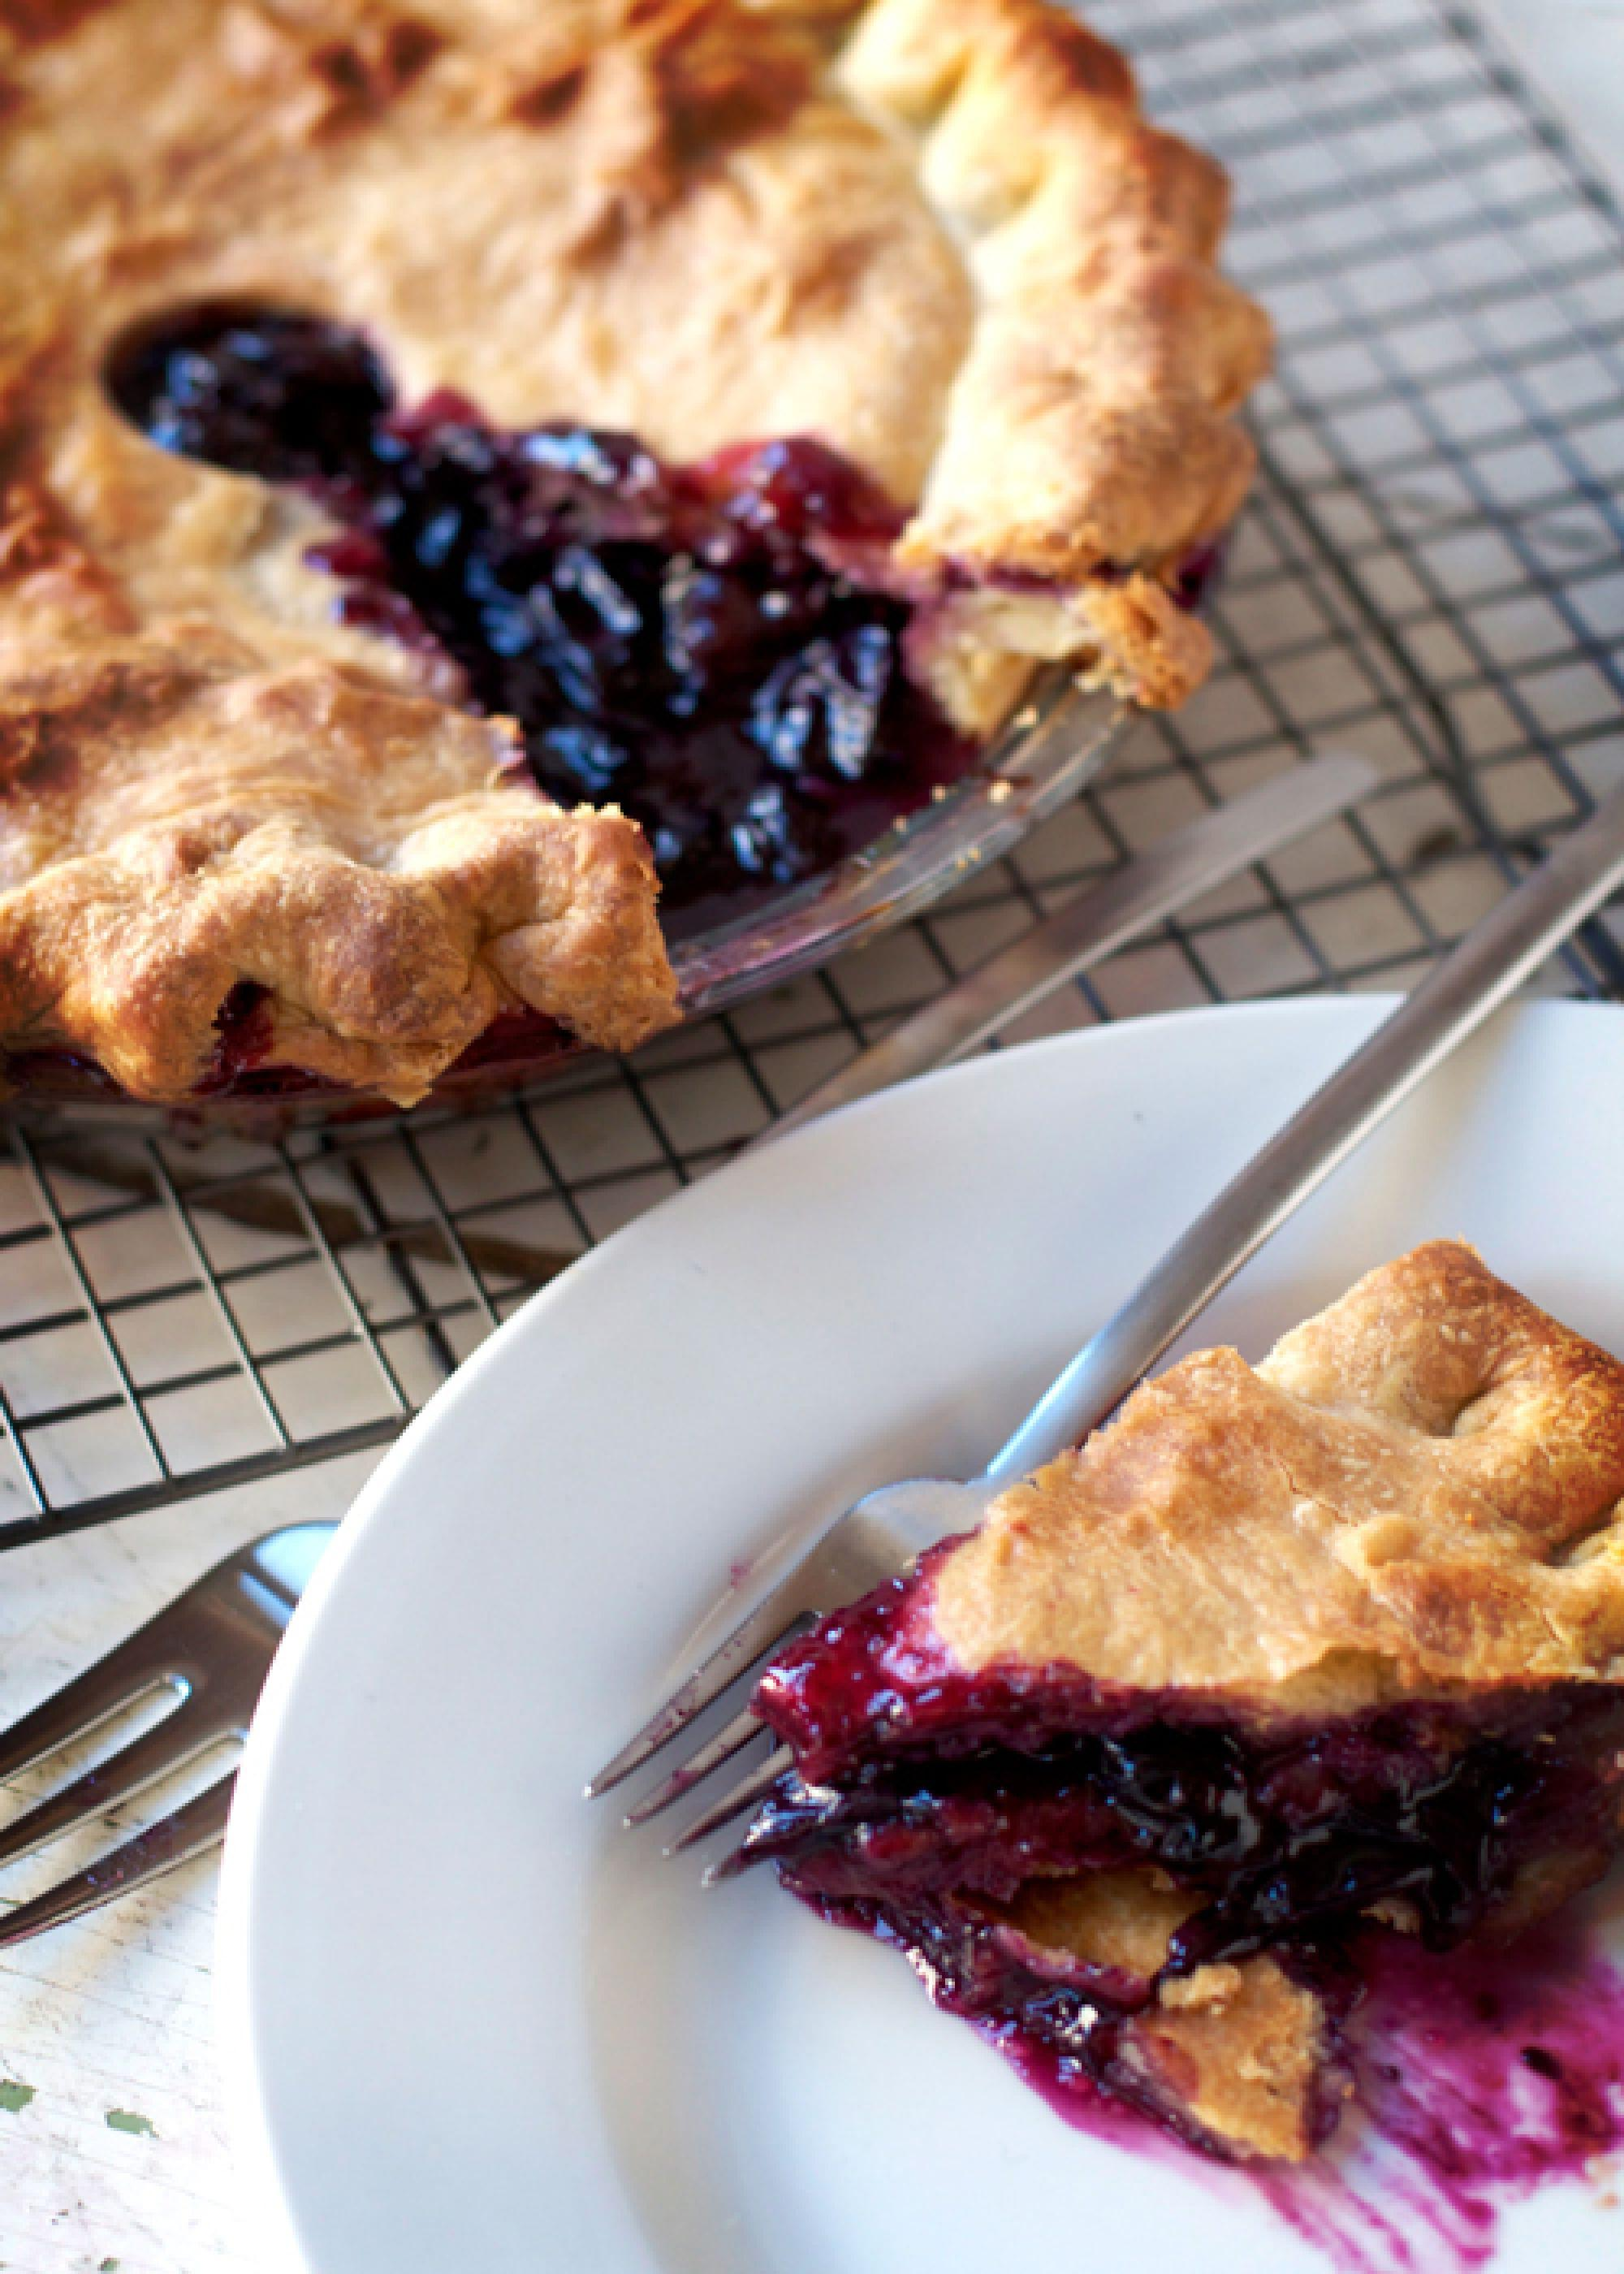 TBT Recipe: Concord Grape Pie